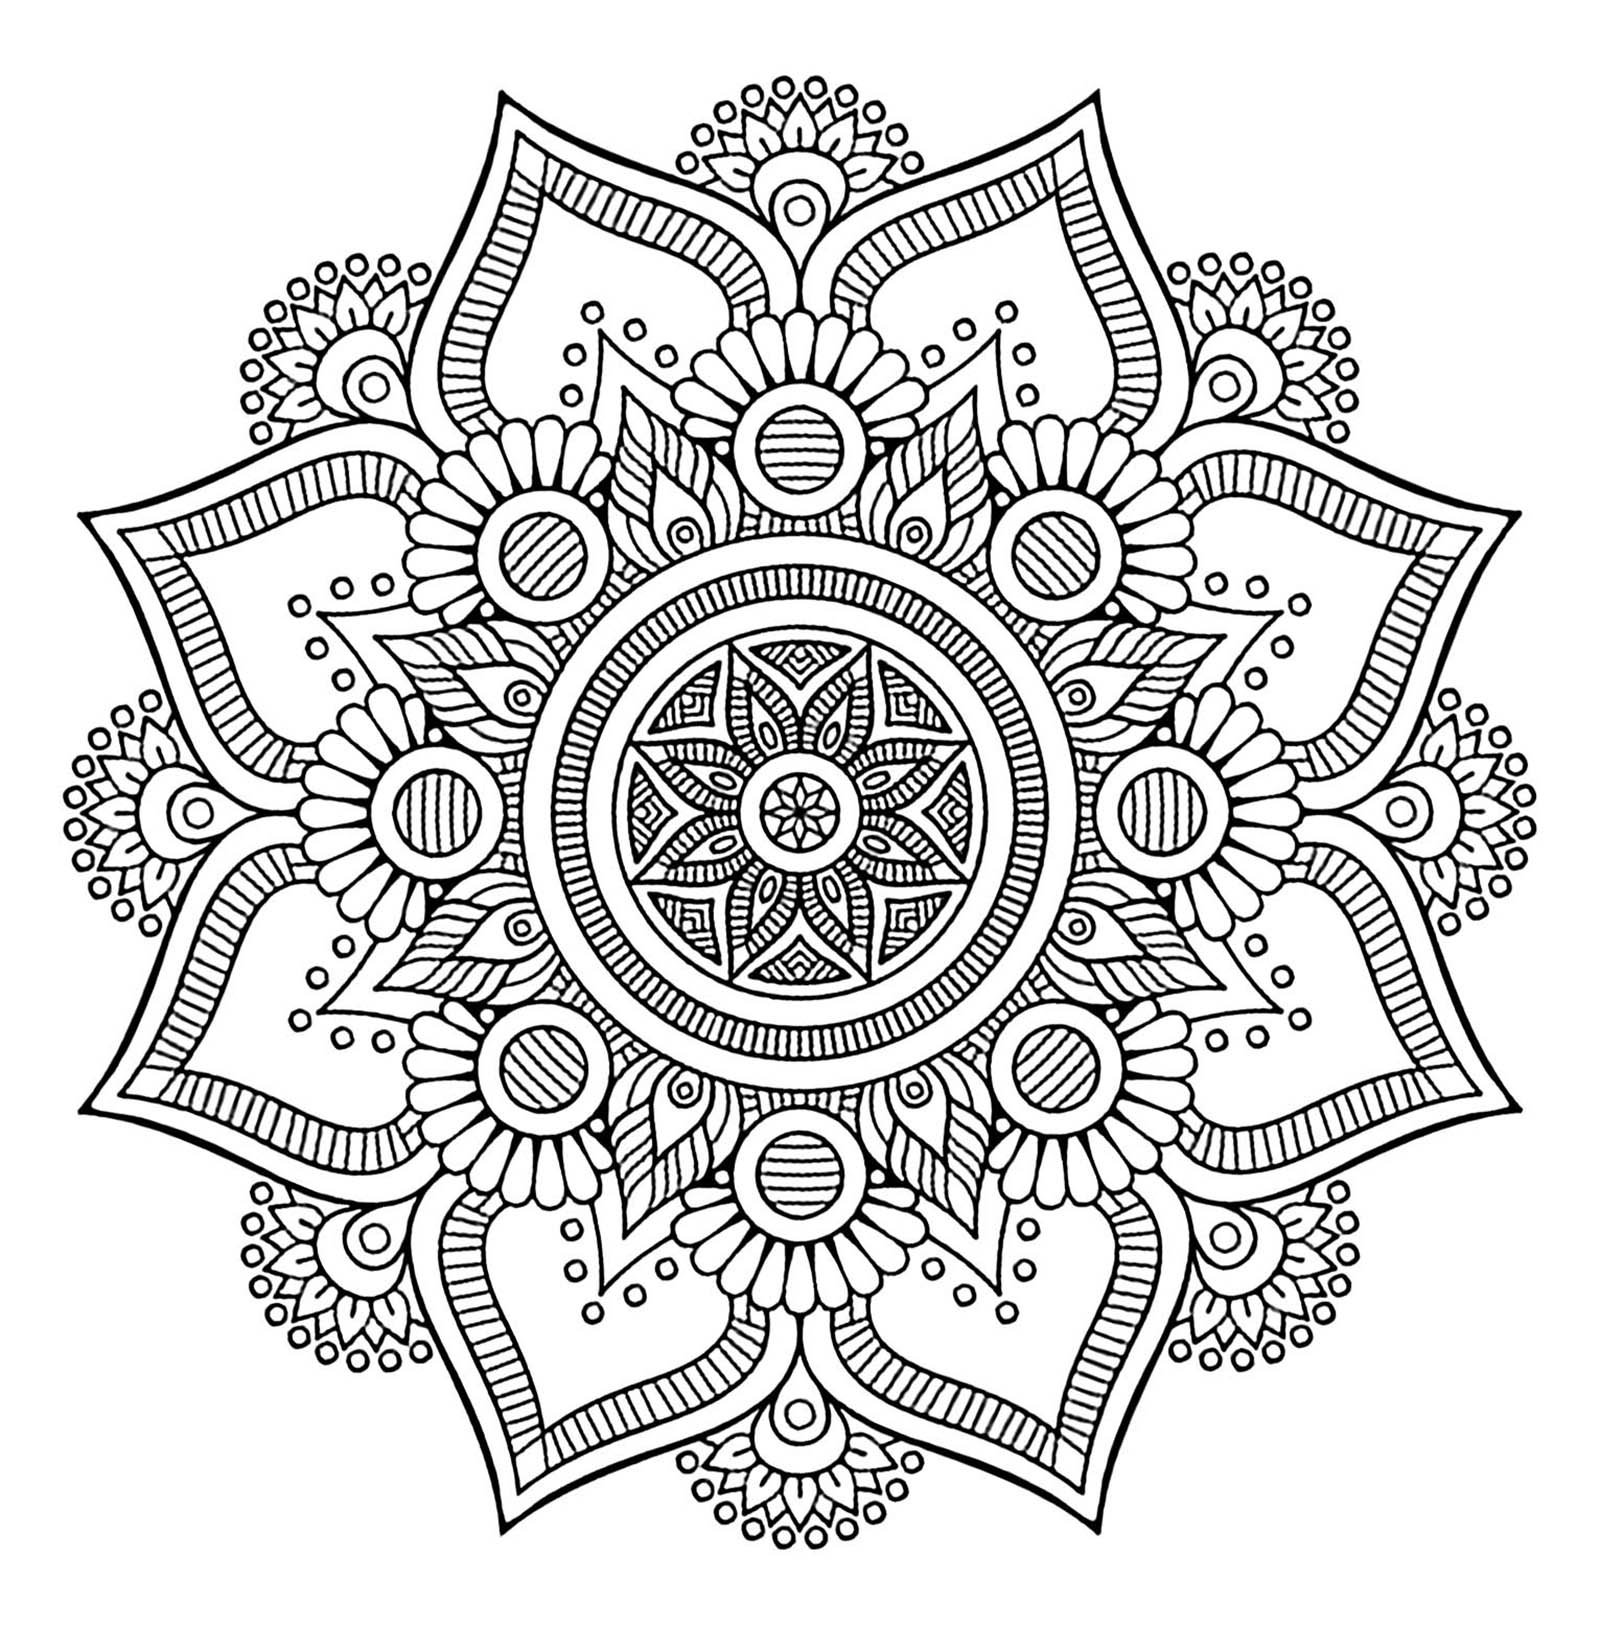 Mandalas To Color For Children Mandalas Kids Coloring Pages